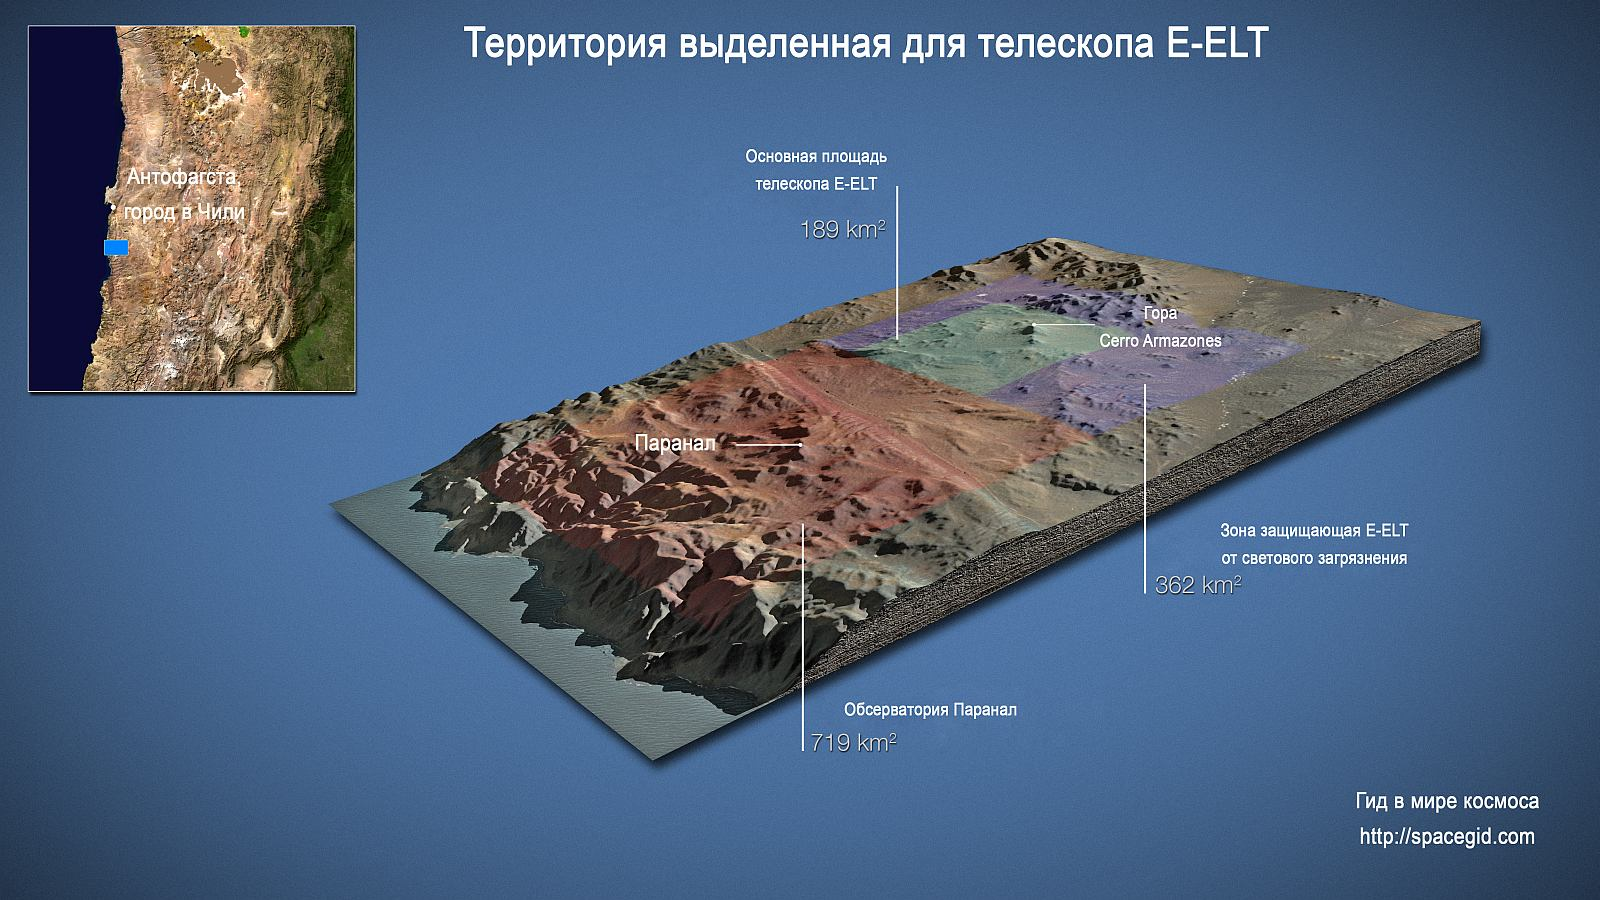 Телескоп ELT (Extremely Large Telescope) 28 Январь 2017 19:44